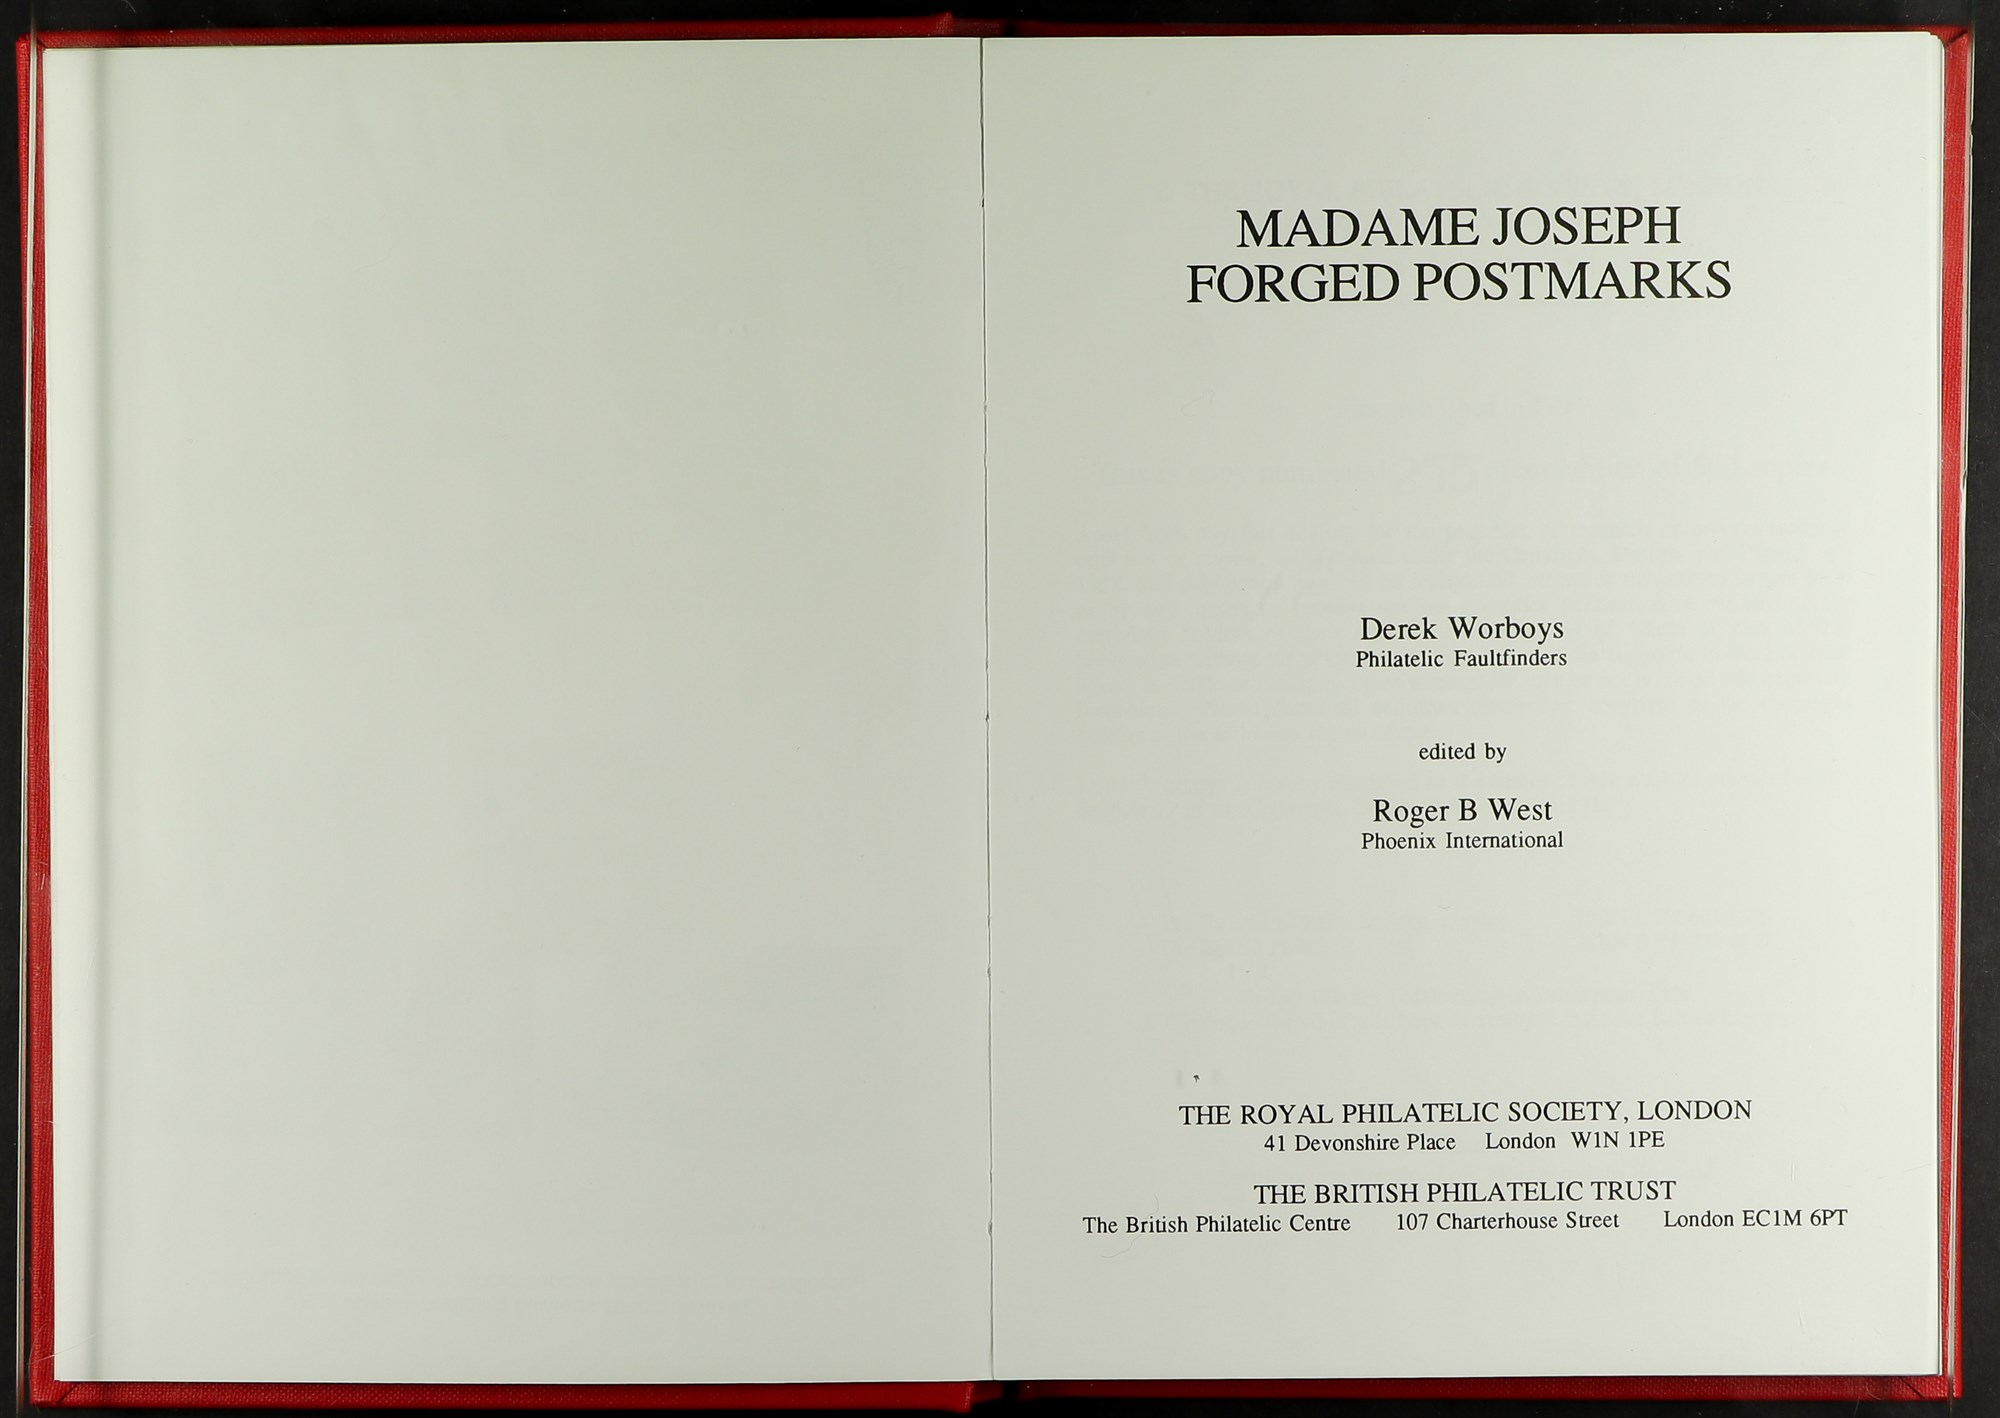 MADAME JOSEPH FORGED POSTMARKS book by D. Worboys & R. B. West, 1994, numbered 255 of an edition of - Image 5 of 5